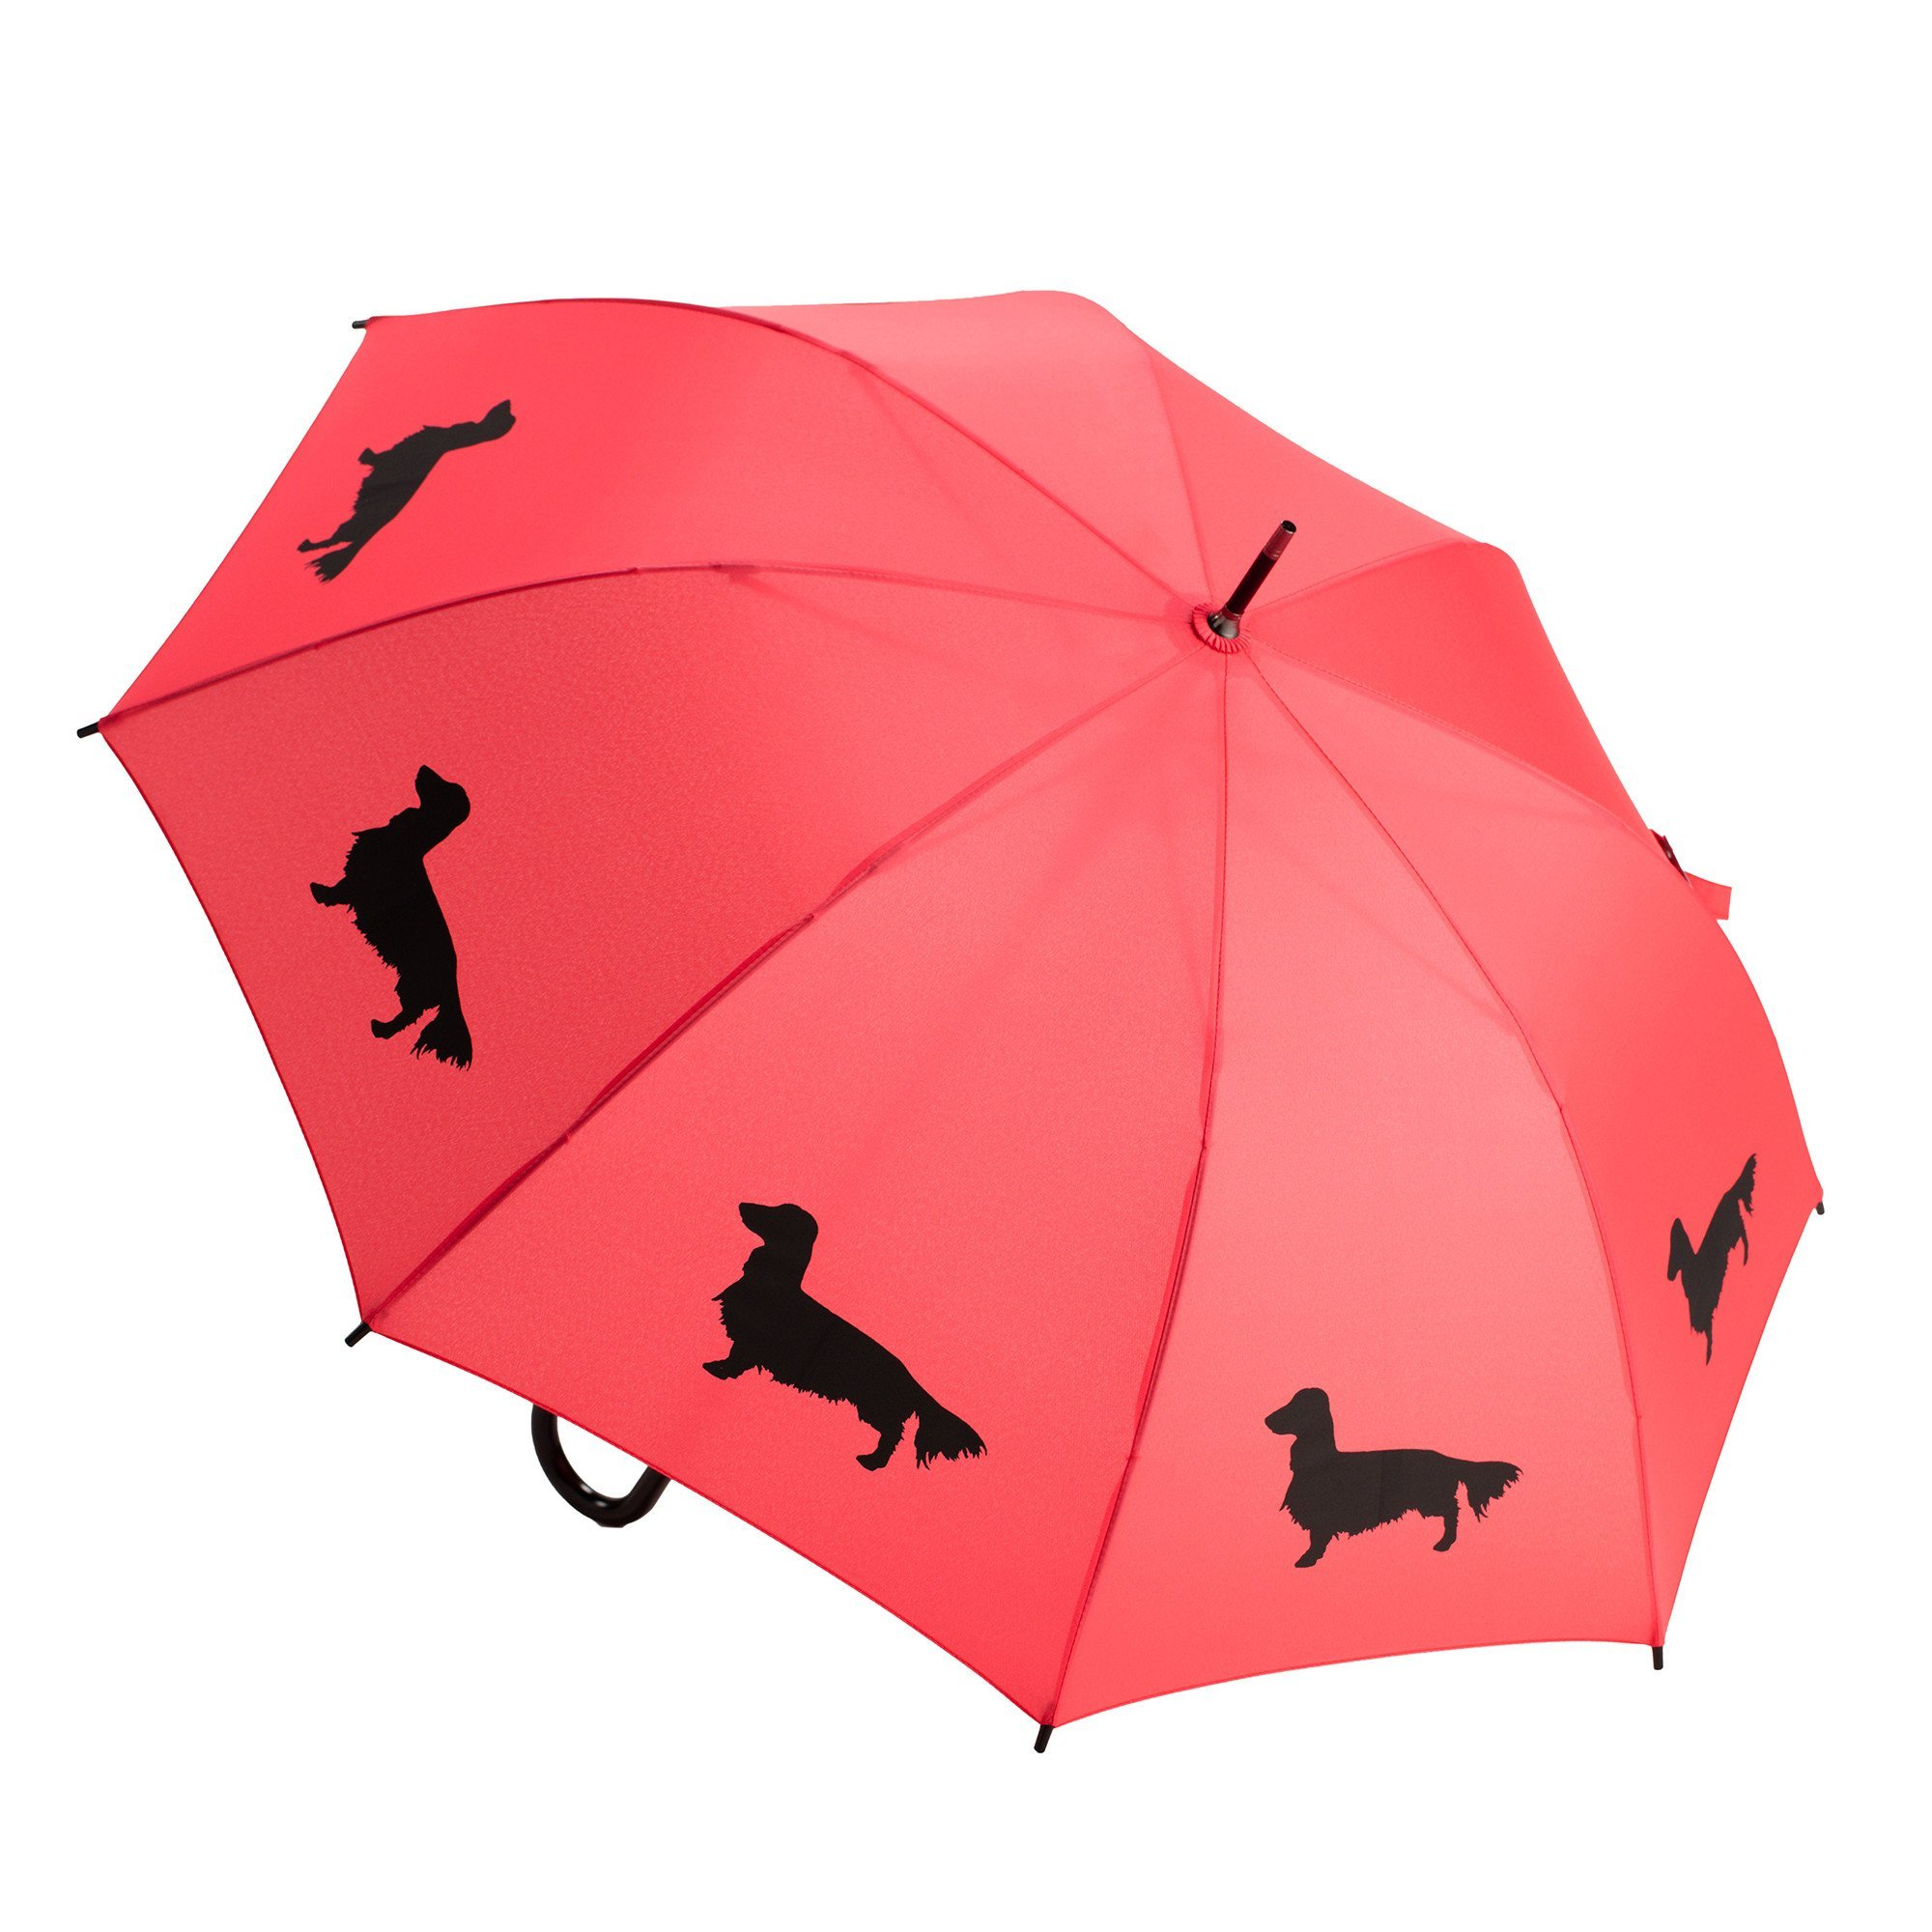 2000x2000 The San Francisco Umbrella Company Animal And Decorated Umbrellas